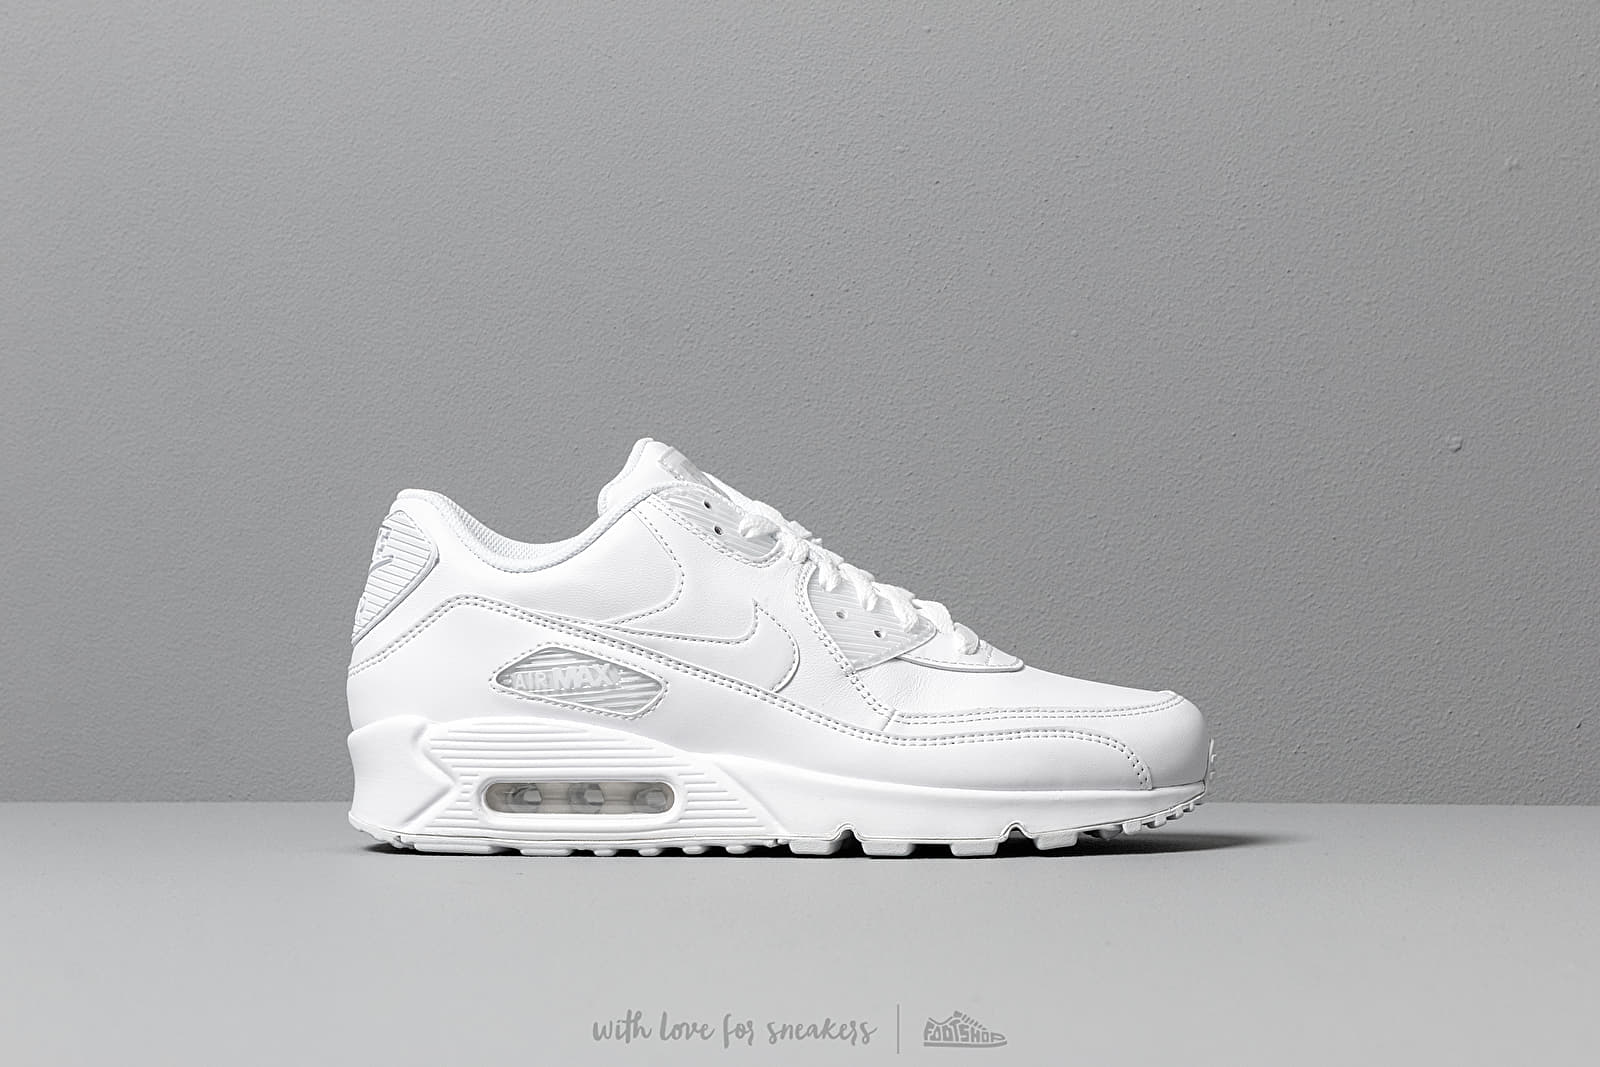 reputable site 5d953 73498 Nike Air Max 90 Leather True White  True White at a great price 139 €